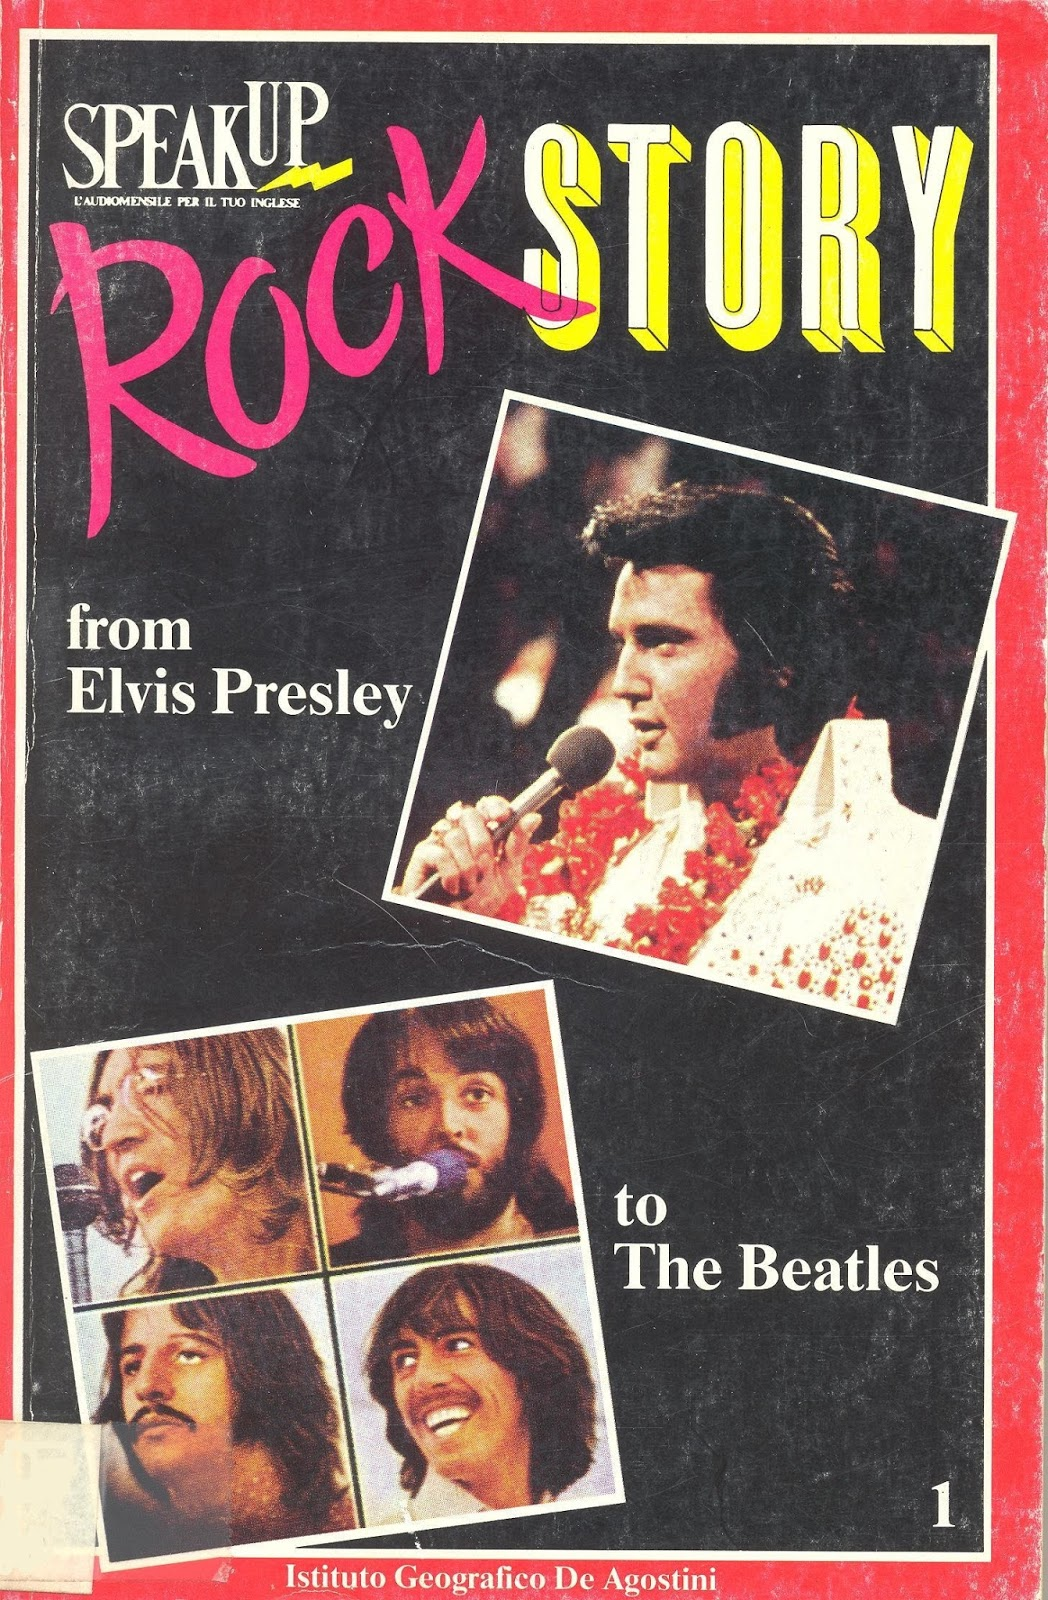 Libros Beatles Elvis Presley Made In Italy Rock Story From Elvis